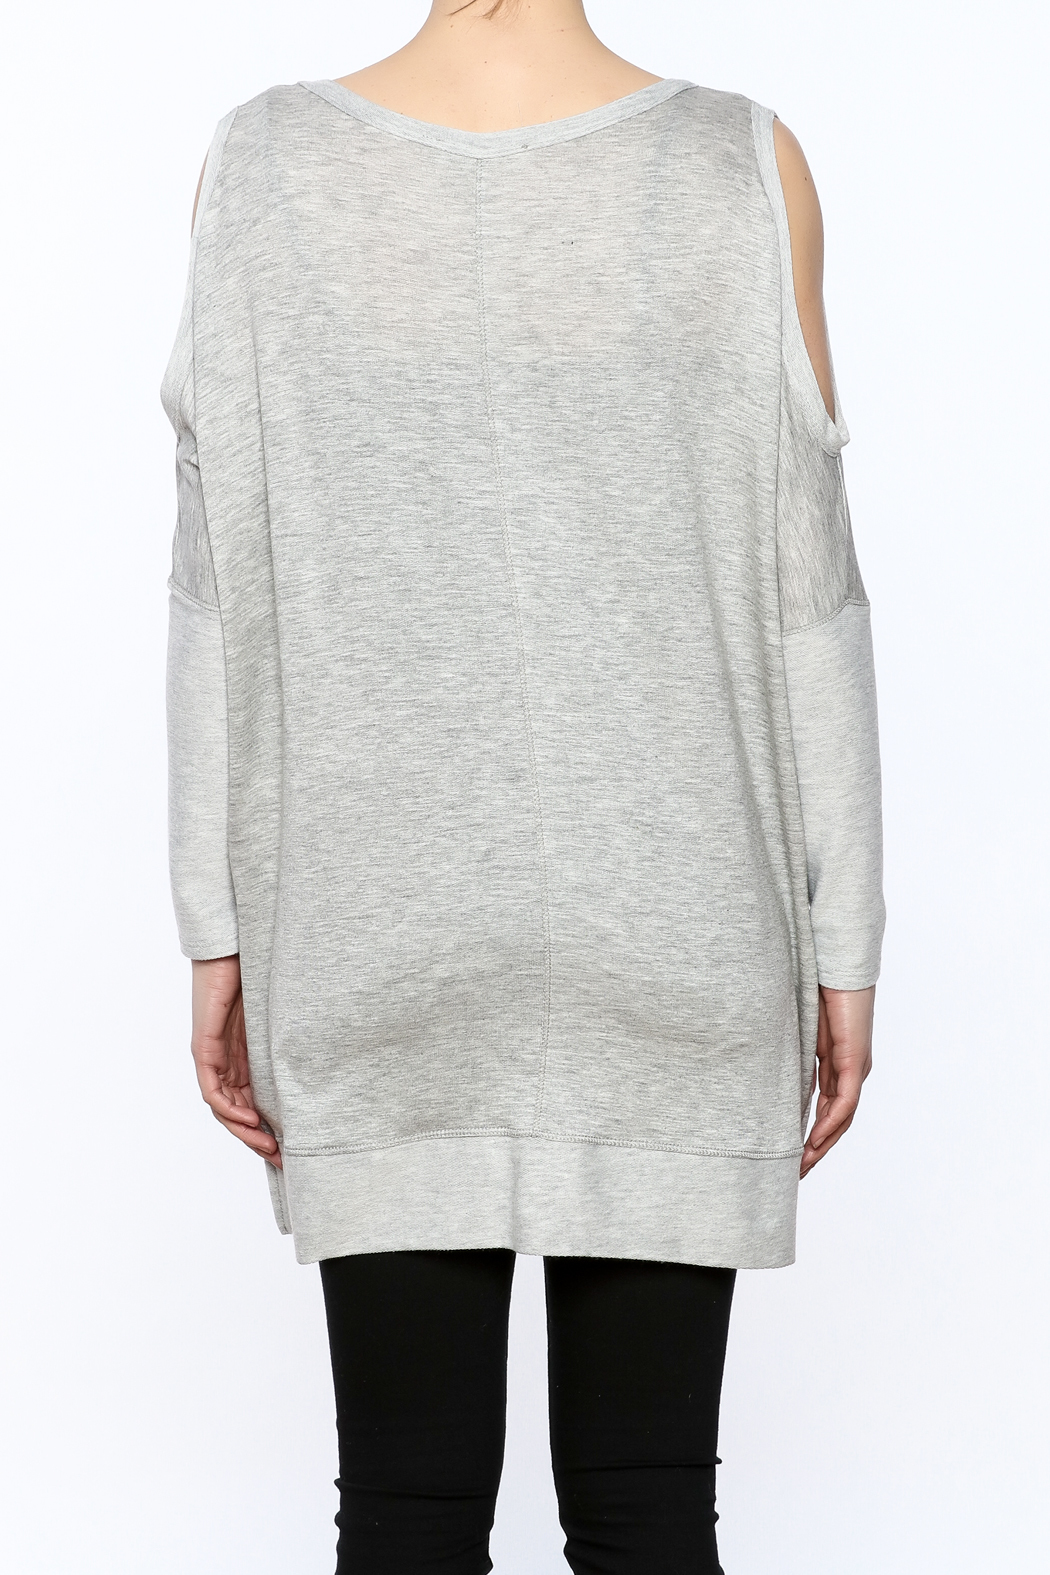 a.gain Grey Tunic Top - Back Cropped Image